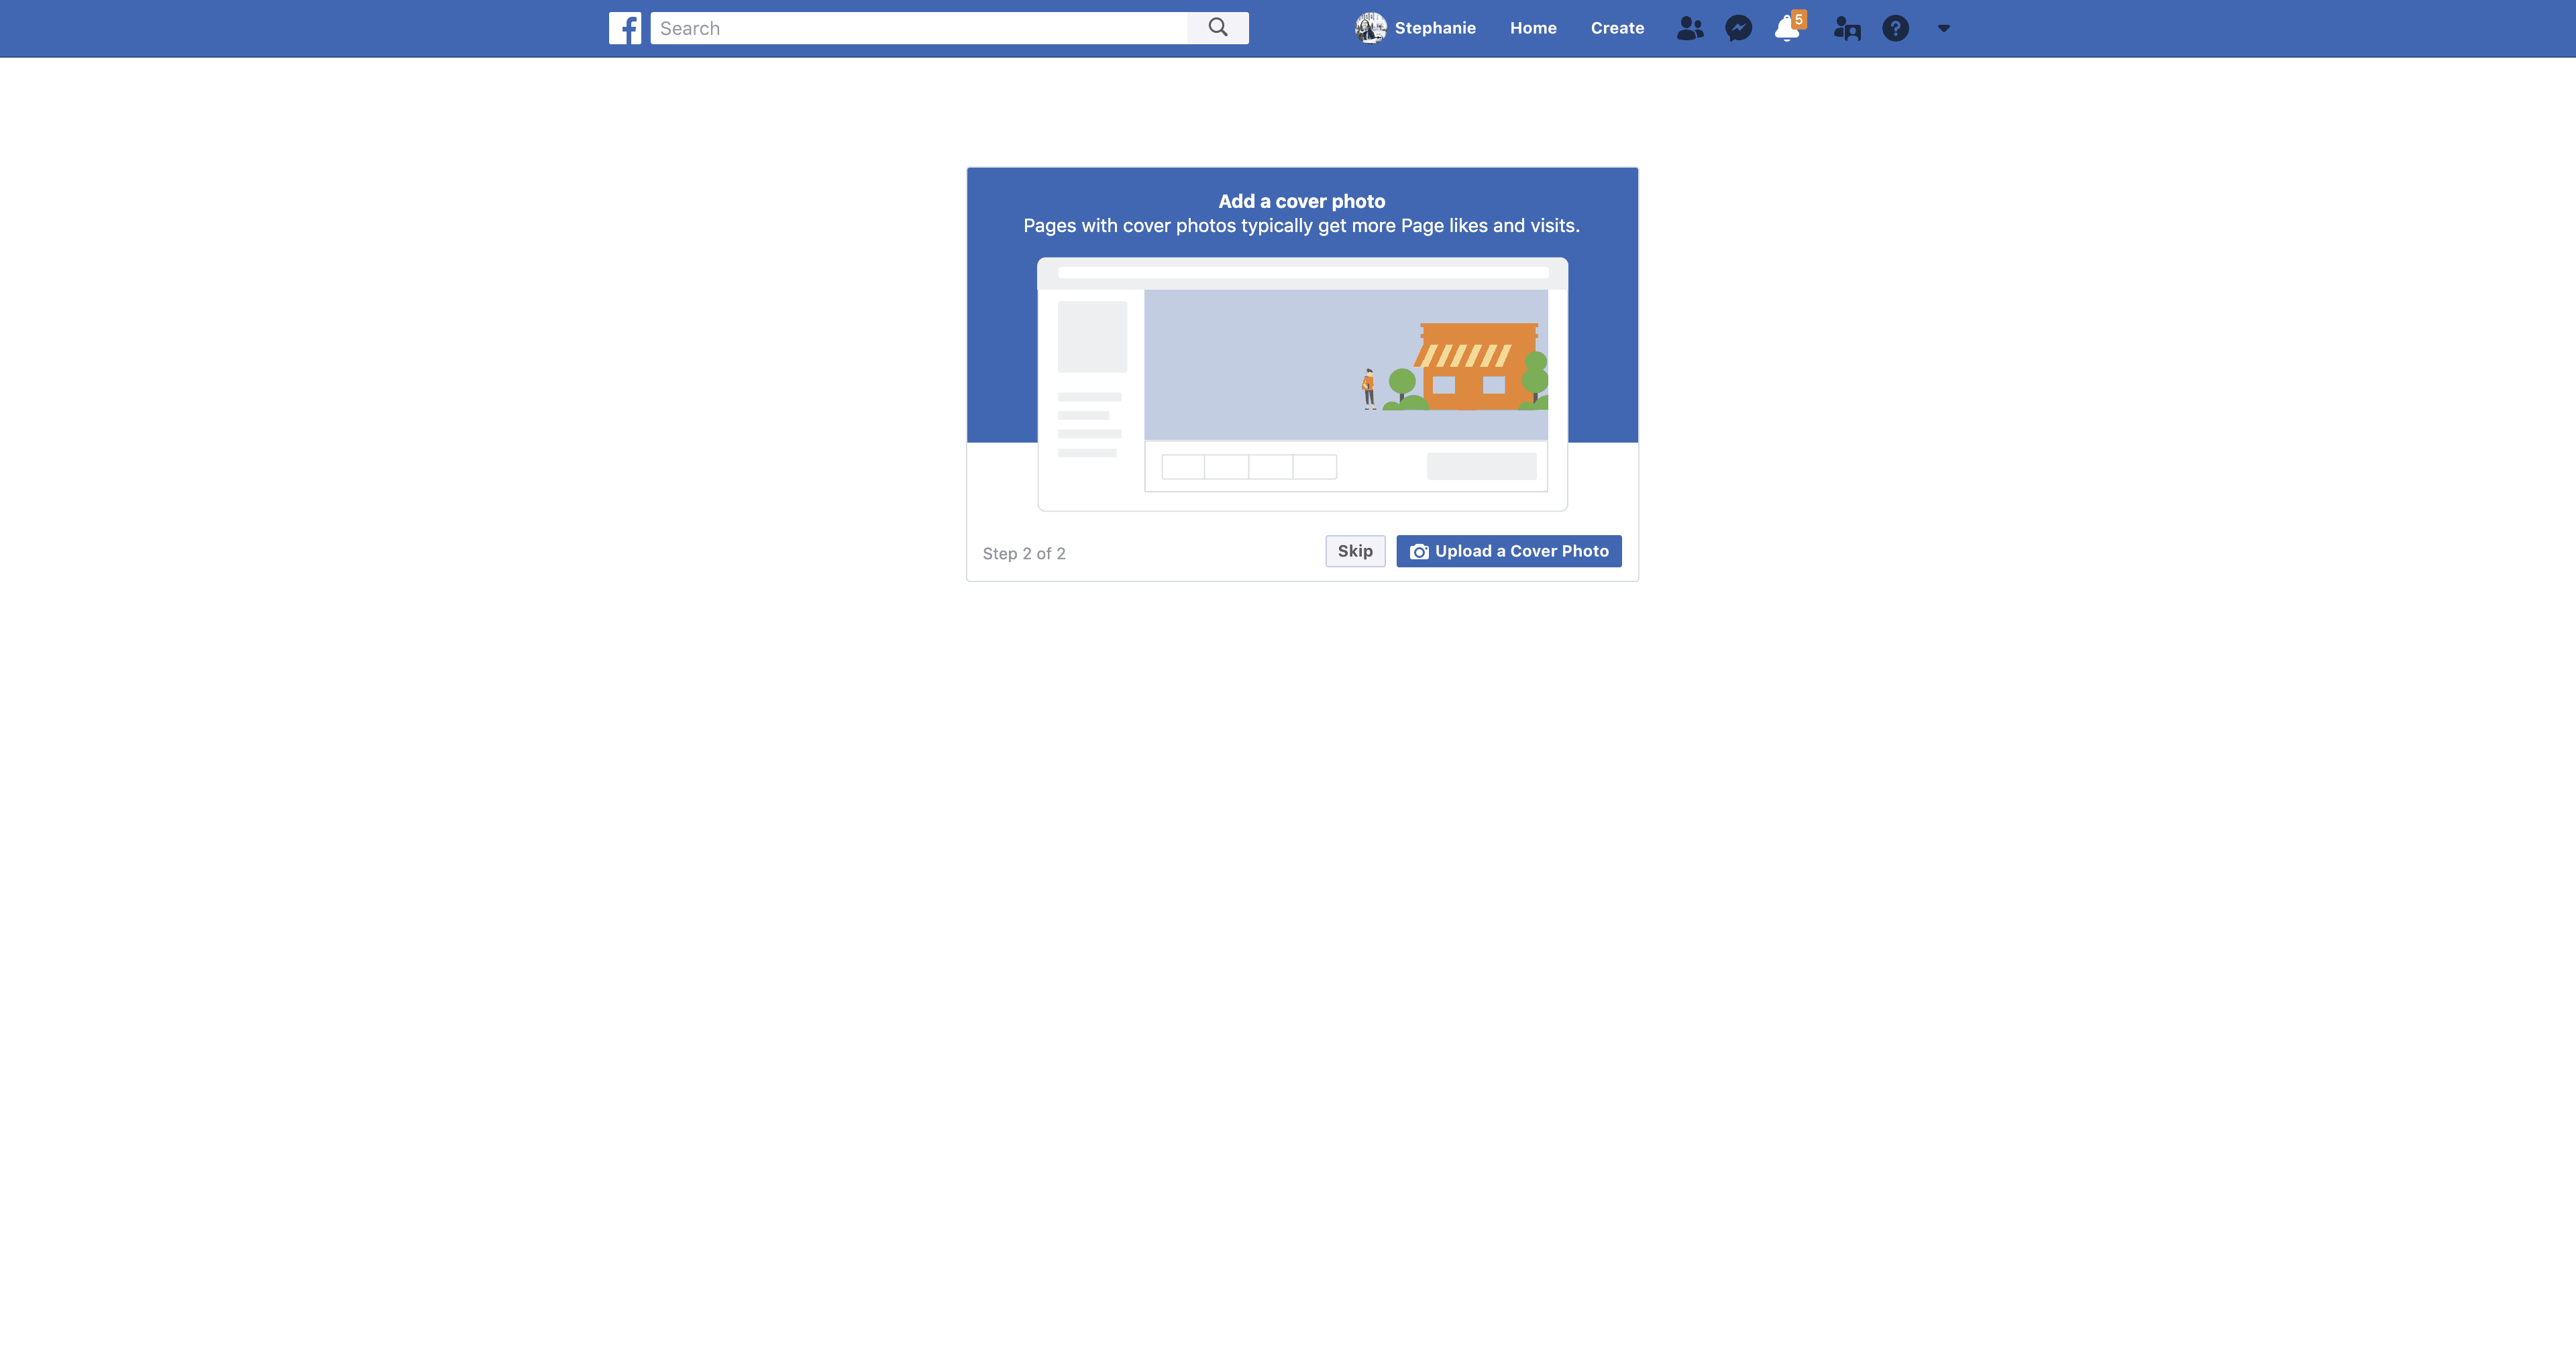 Add a Cover Photo for New Page by Facebook